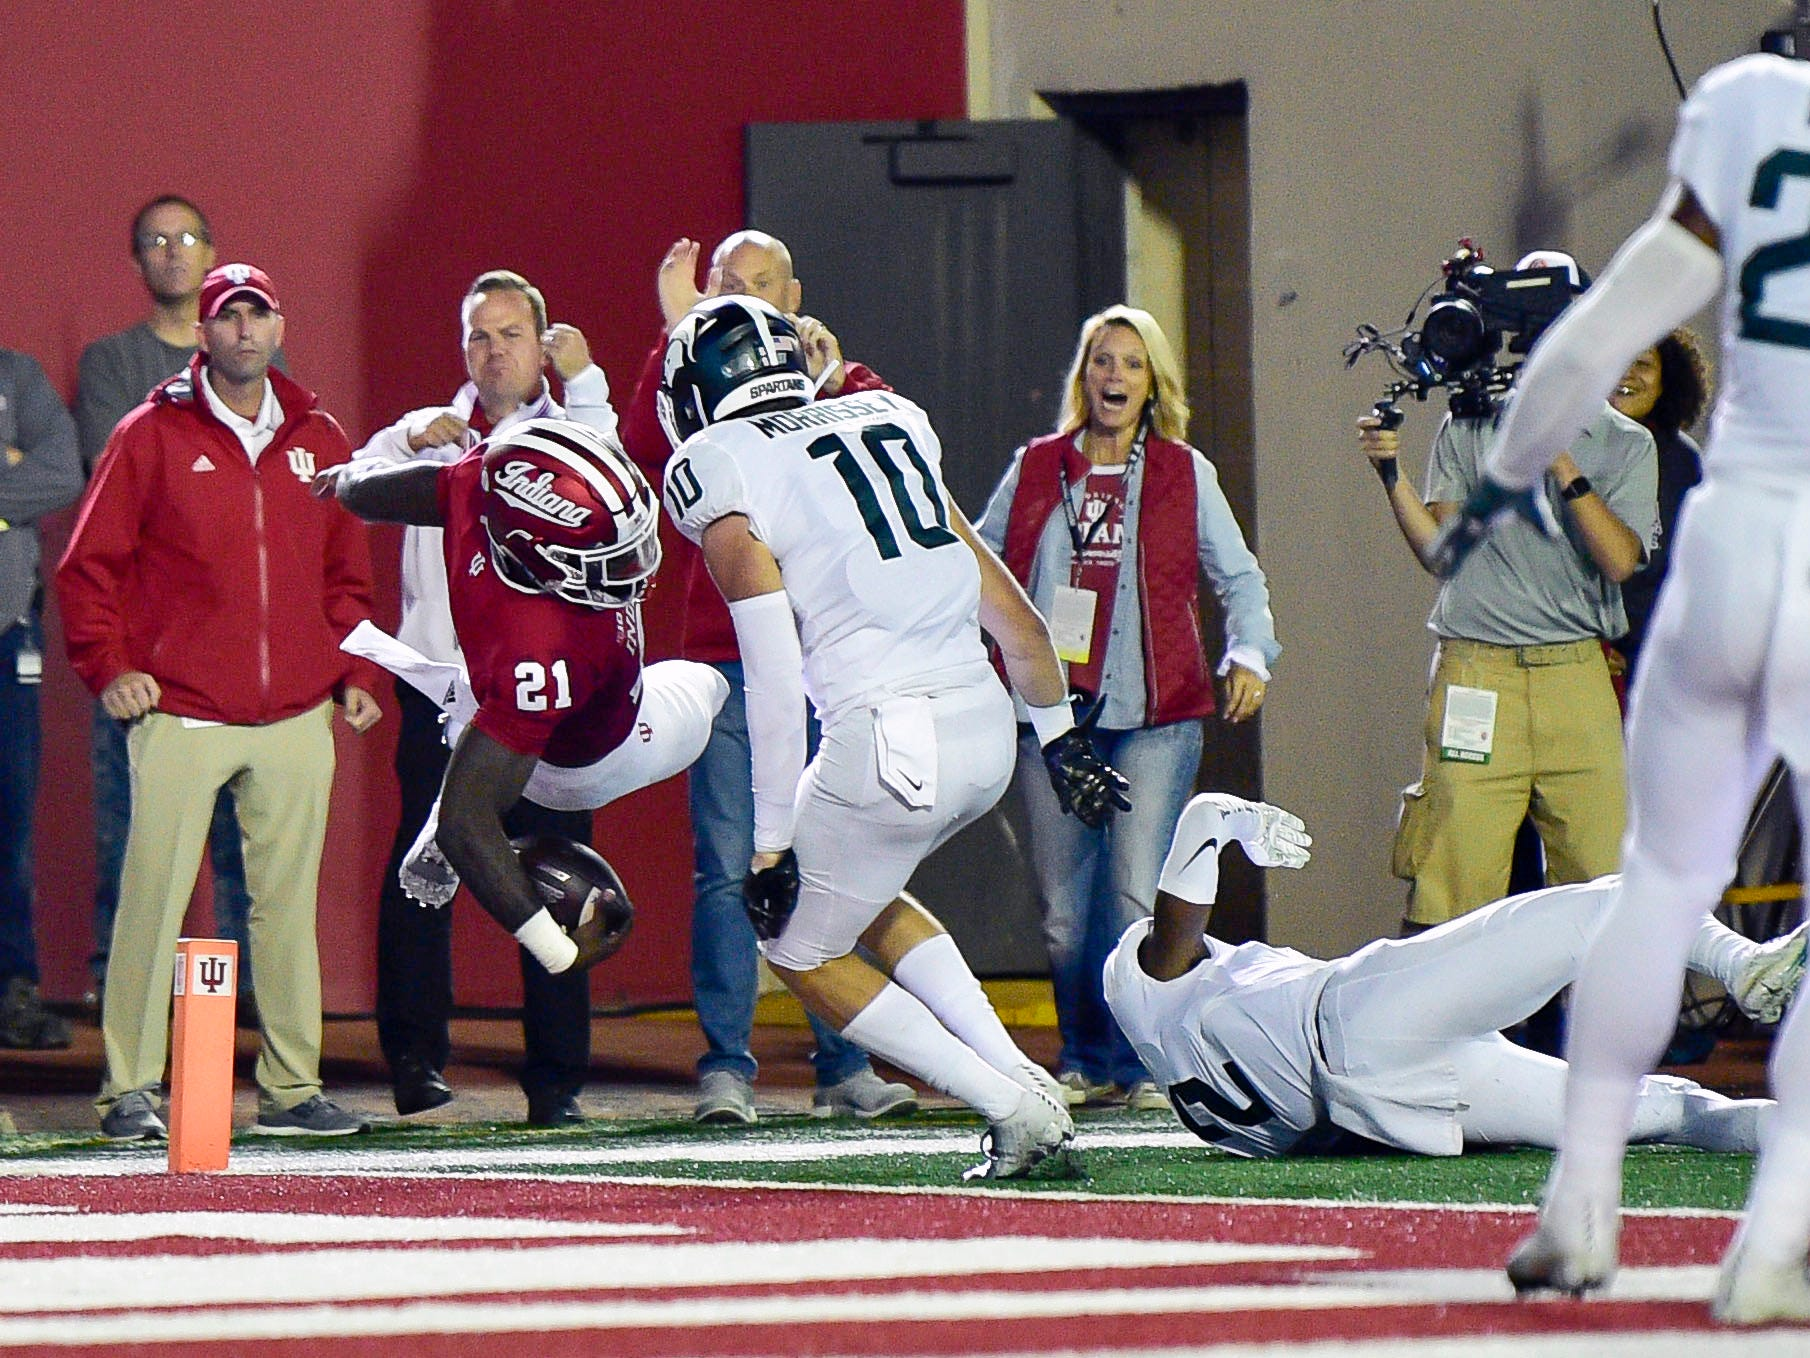 Indiana Hoosiers running back Stevie Scott (21) jumps to attempt to make a touchdown in front of Michigan State Spartans safety Matt Morrissey (10) during the first half of the game at Memorial Stadium.